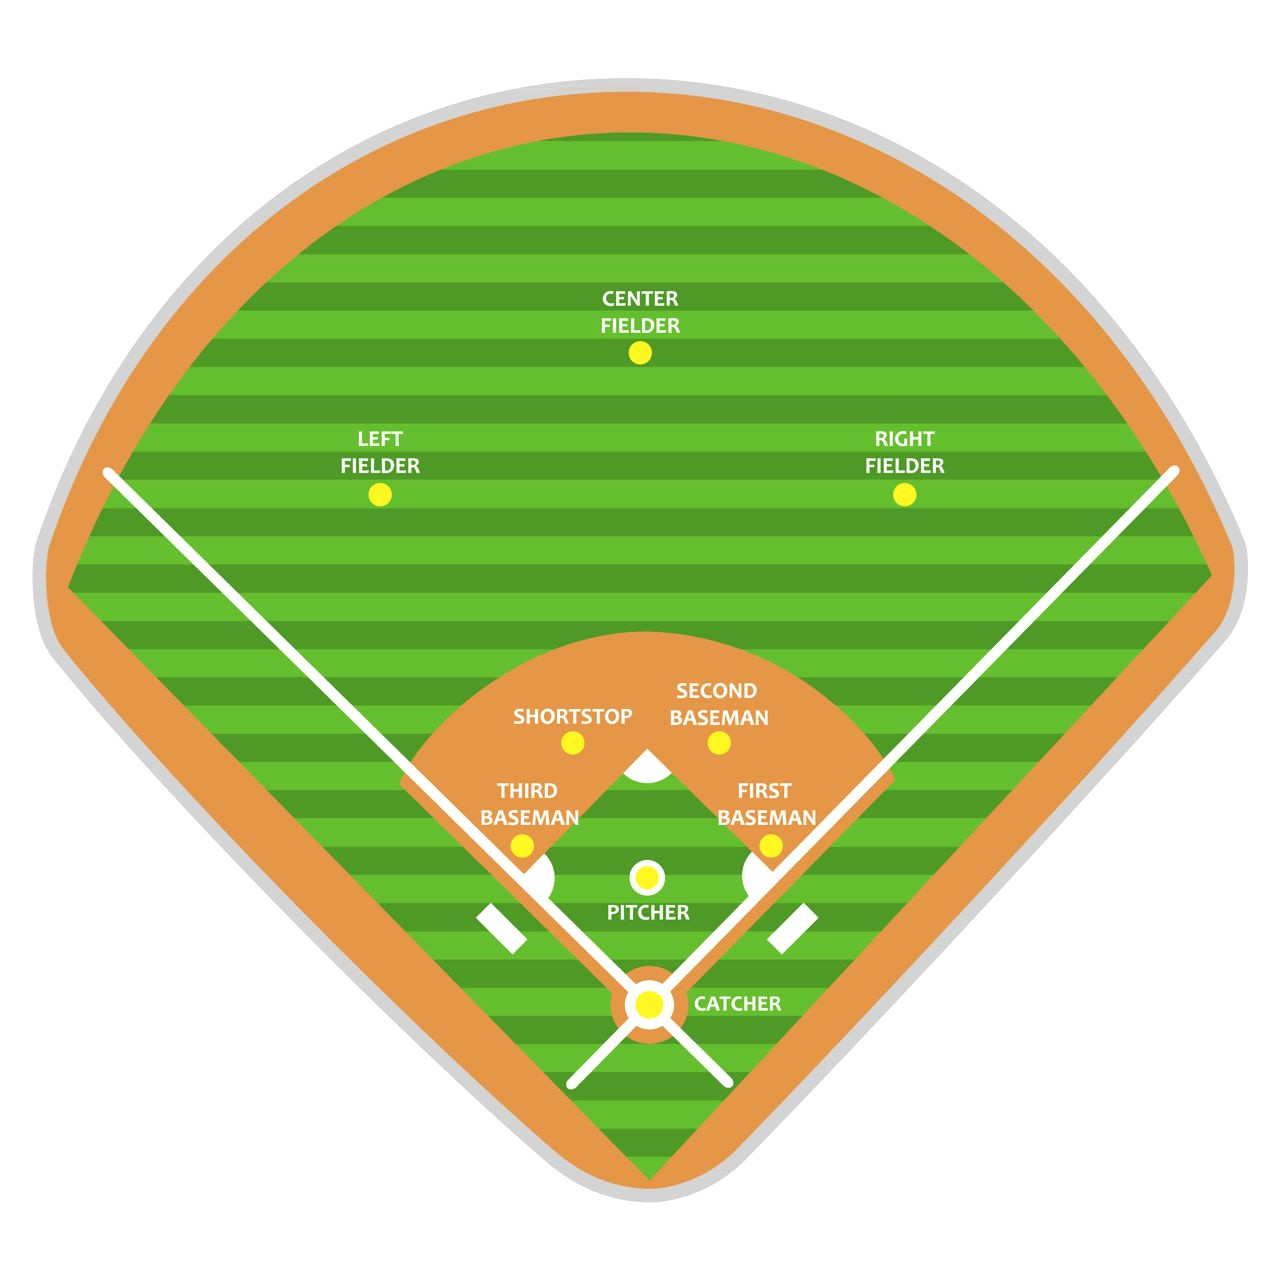 graphic regarding Softball Field Diagram Printable titled Portrait Printable Softball Business Diagram Wiring Diagram